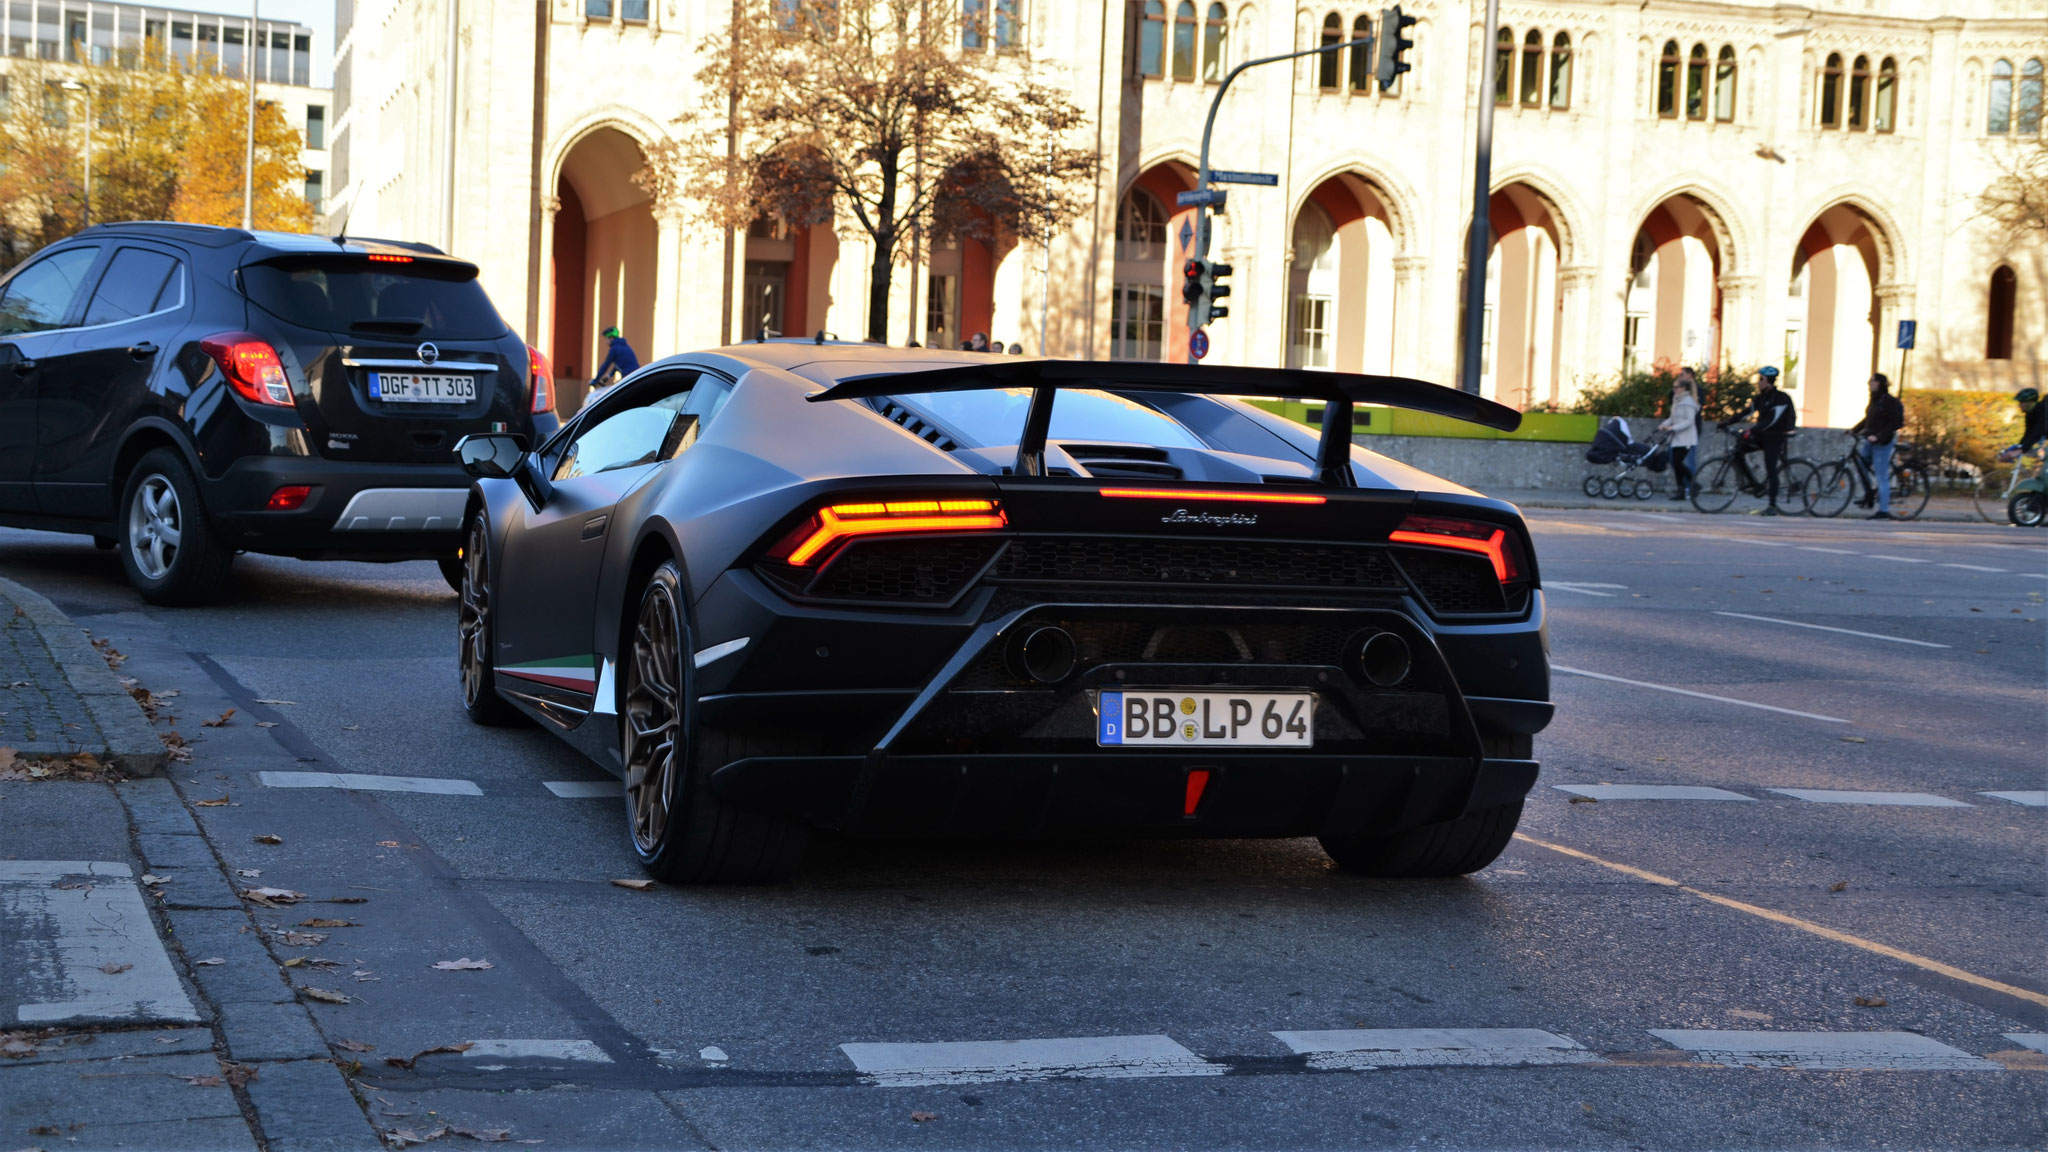 Lamborghini Huracan Performante - BB-LP-64